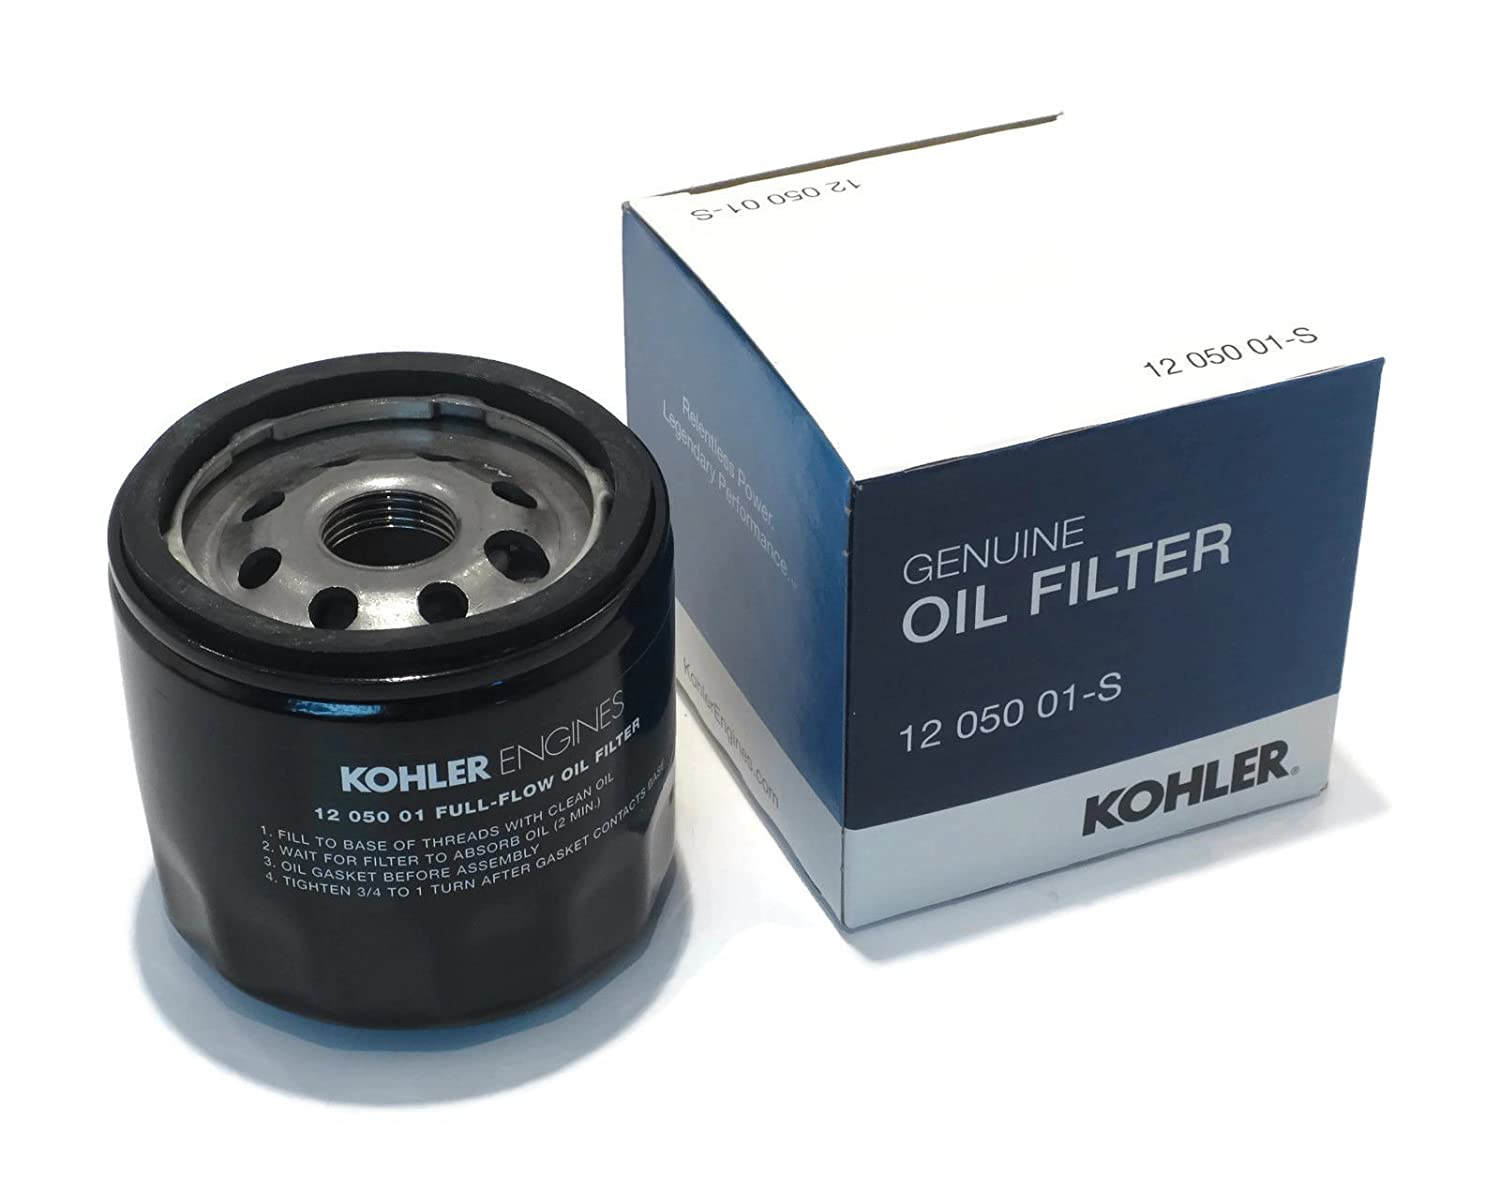 New OEM Kohler OIL FILTER 12 050 01-S 1205001 for Small Gas Engine Lawn Mower /supplytheropshop